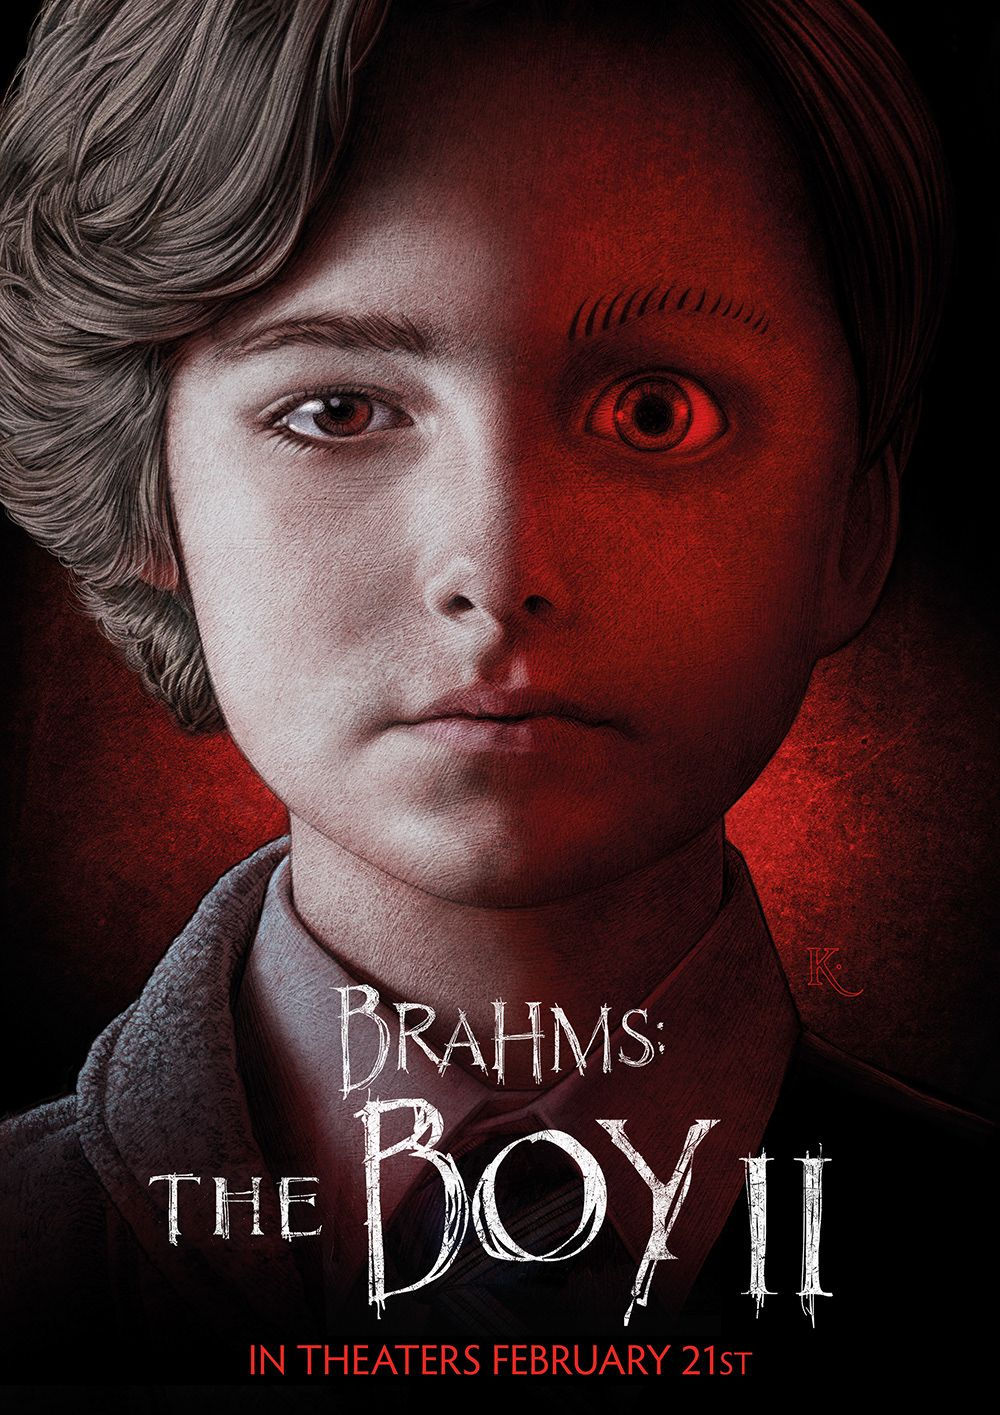 Brahms The Boy 2 Creative Brief Entry On Behance Horror Movies List Horror Movie Posters Horror Movies